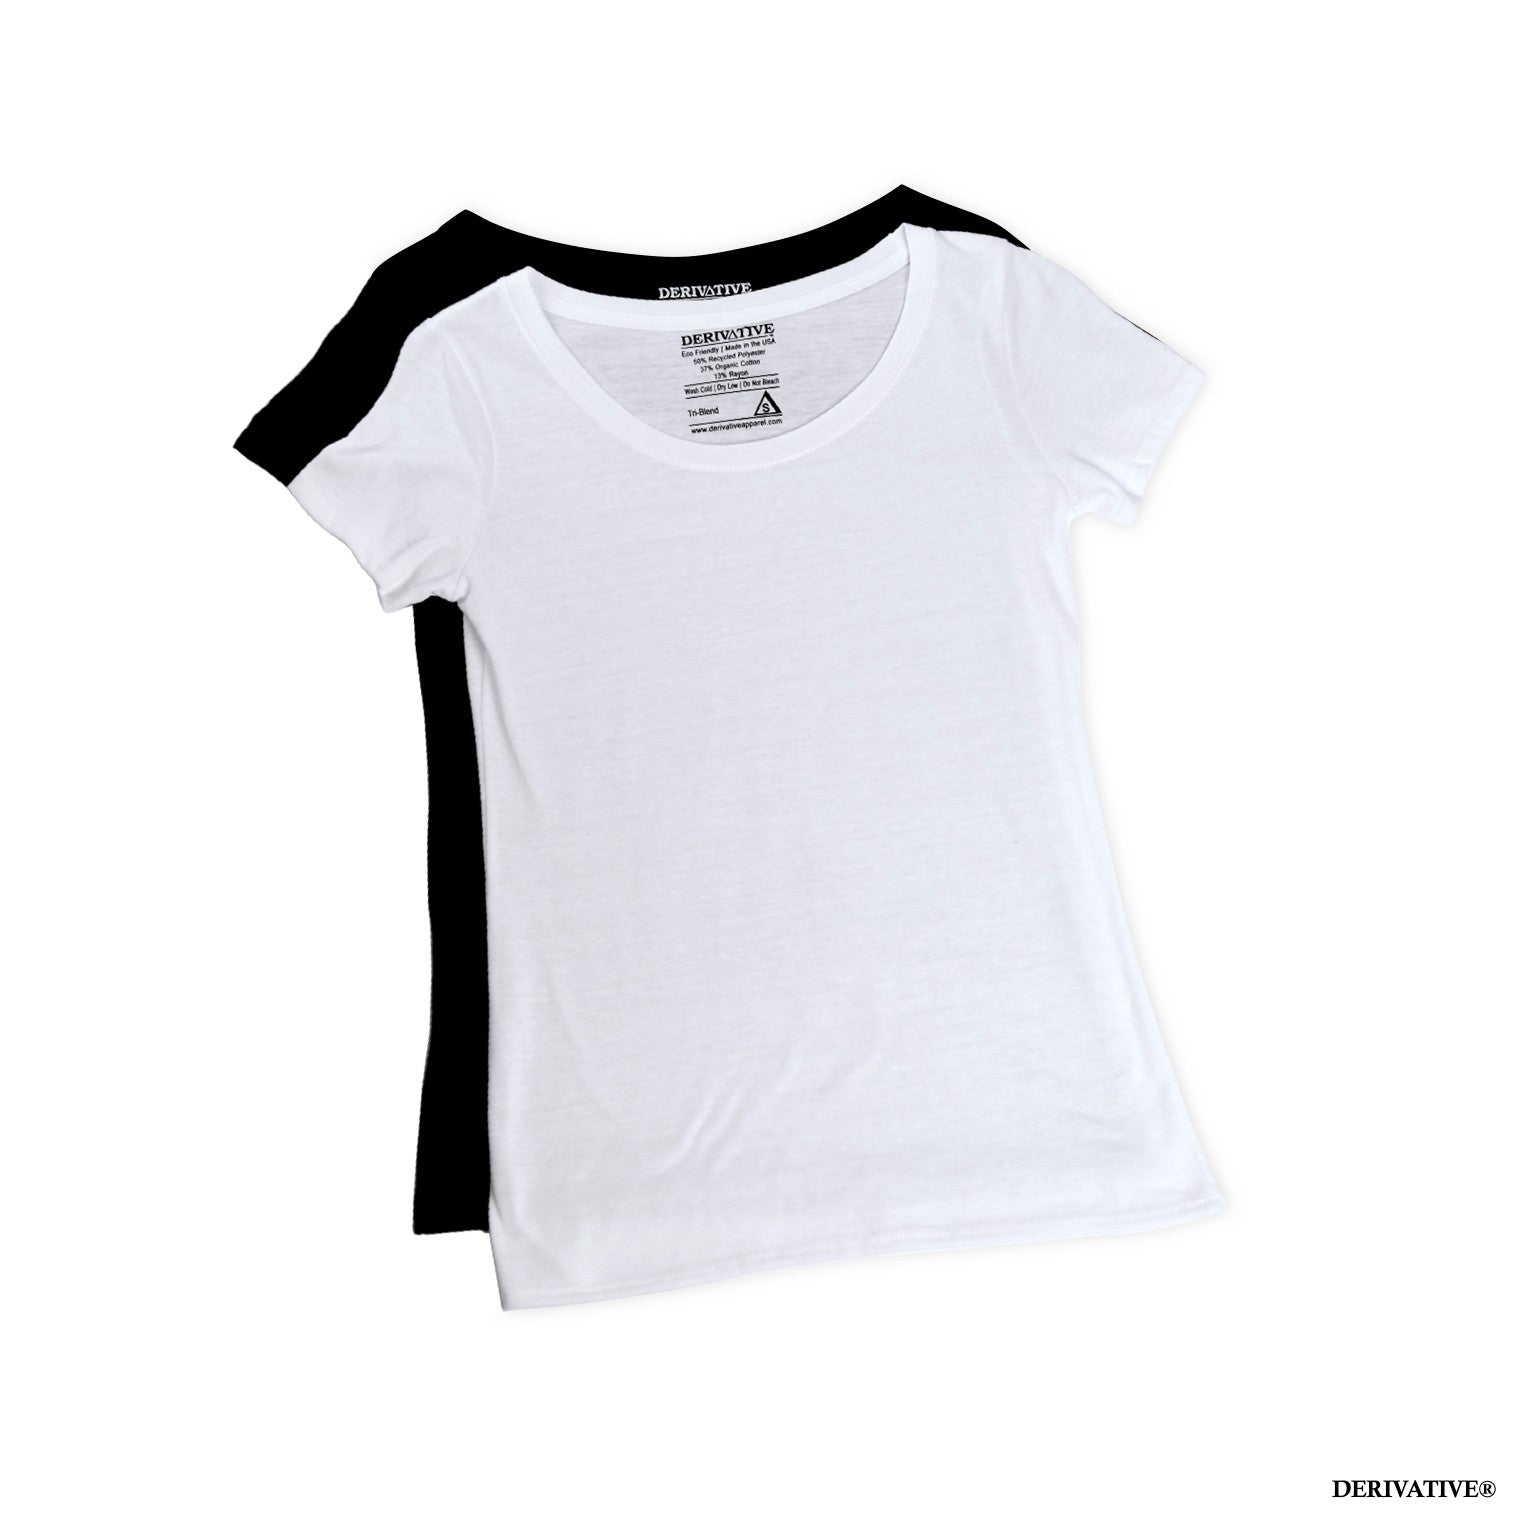 soft comfortable womens eco friendly scoop neck t shirts made from organic cotton & recycled materials